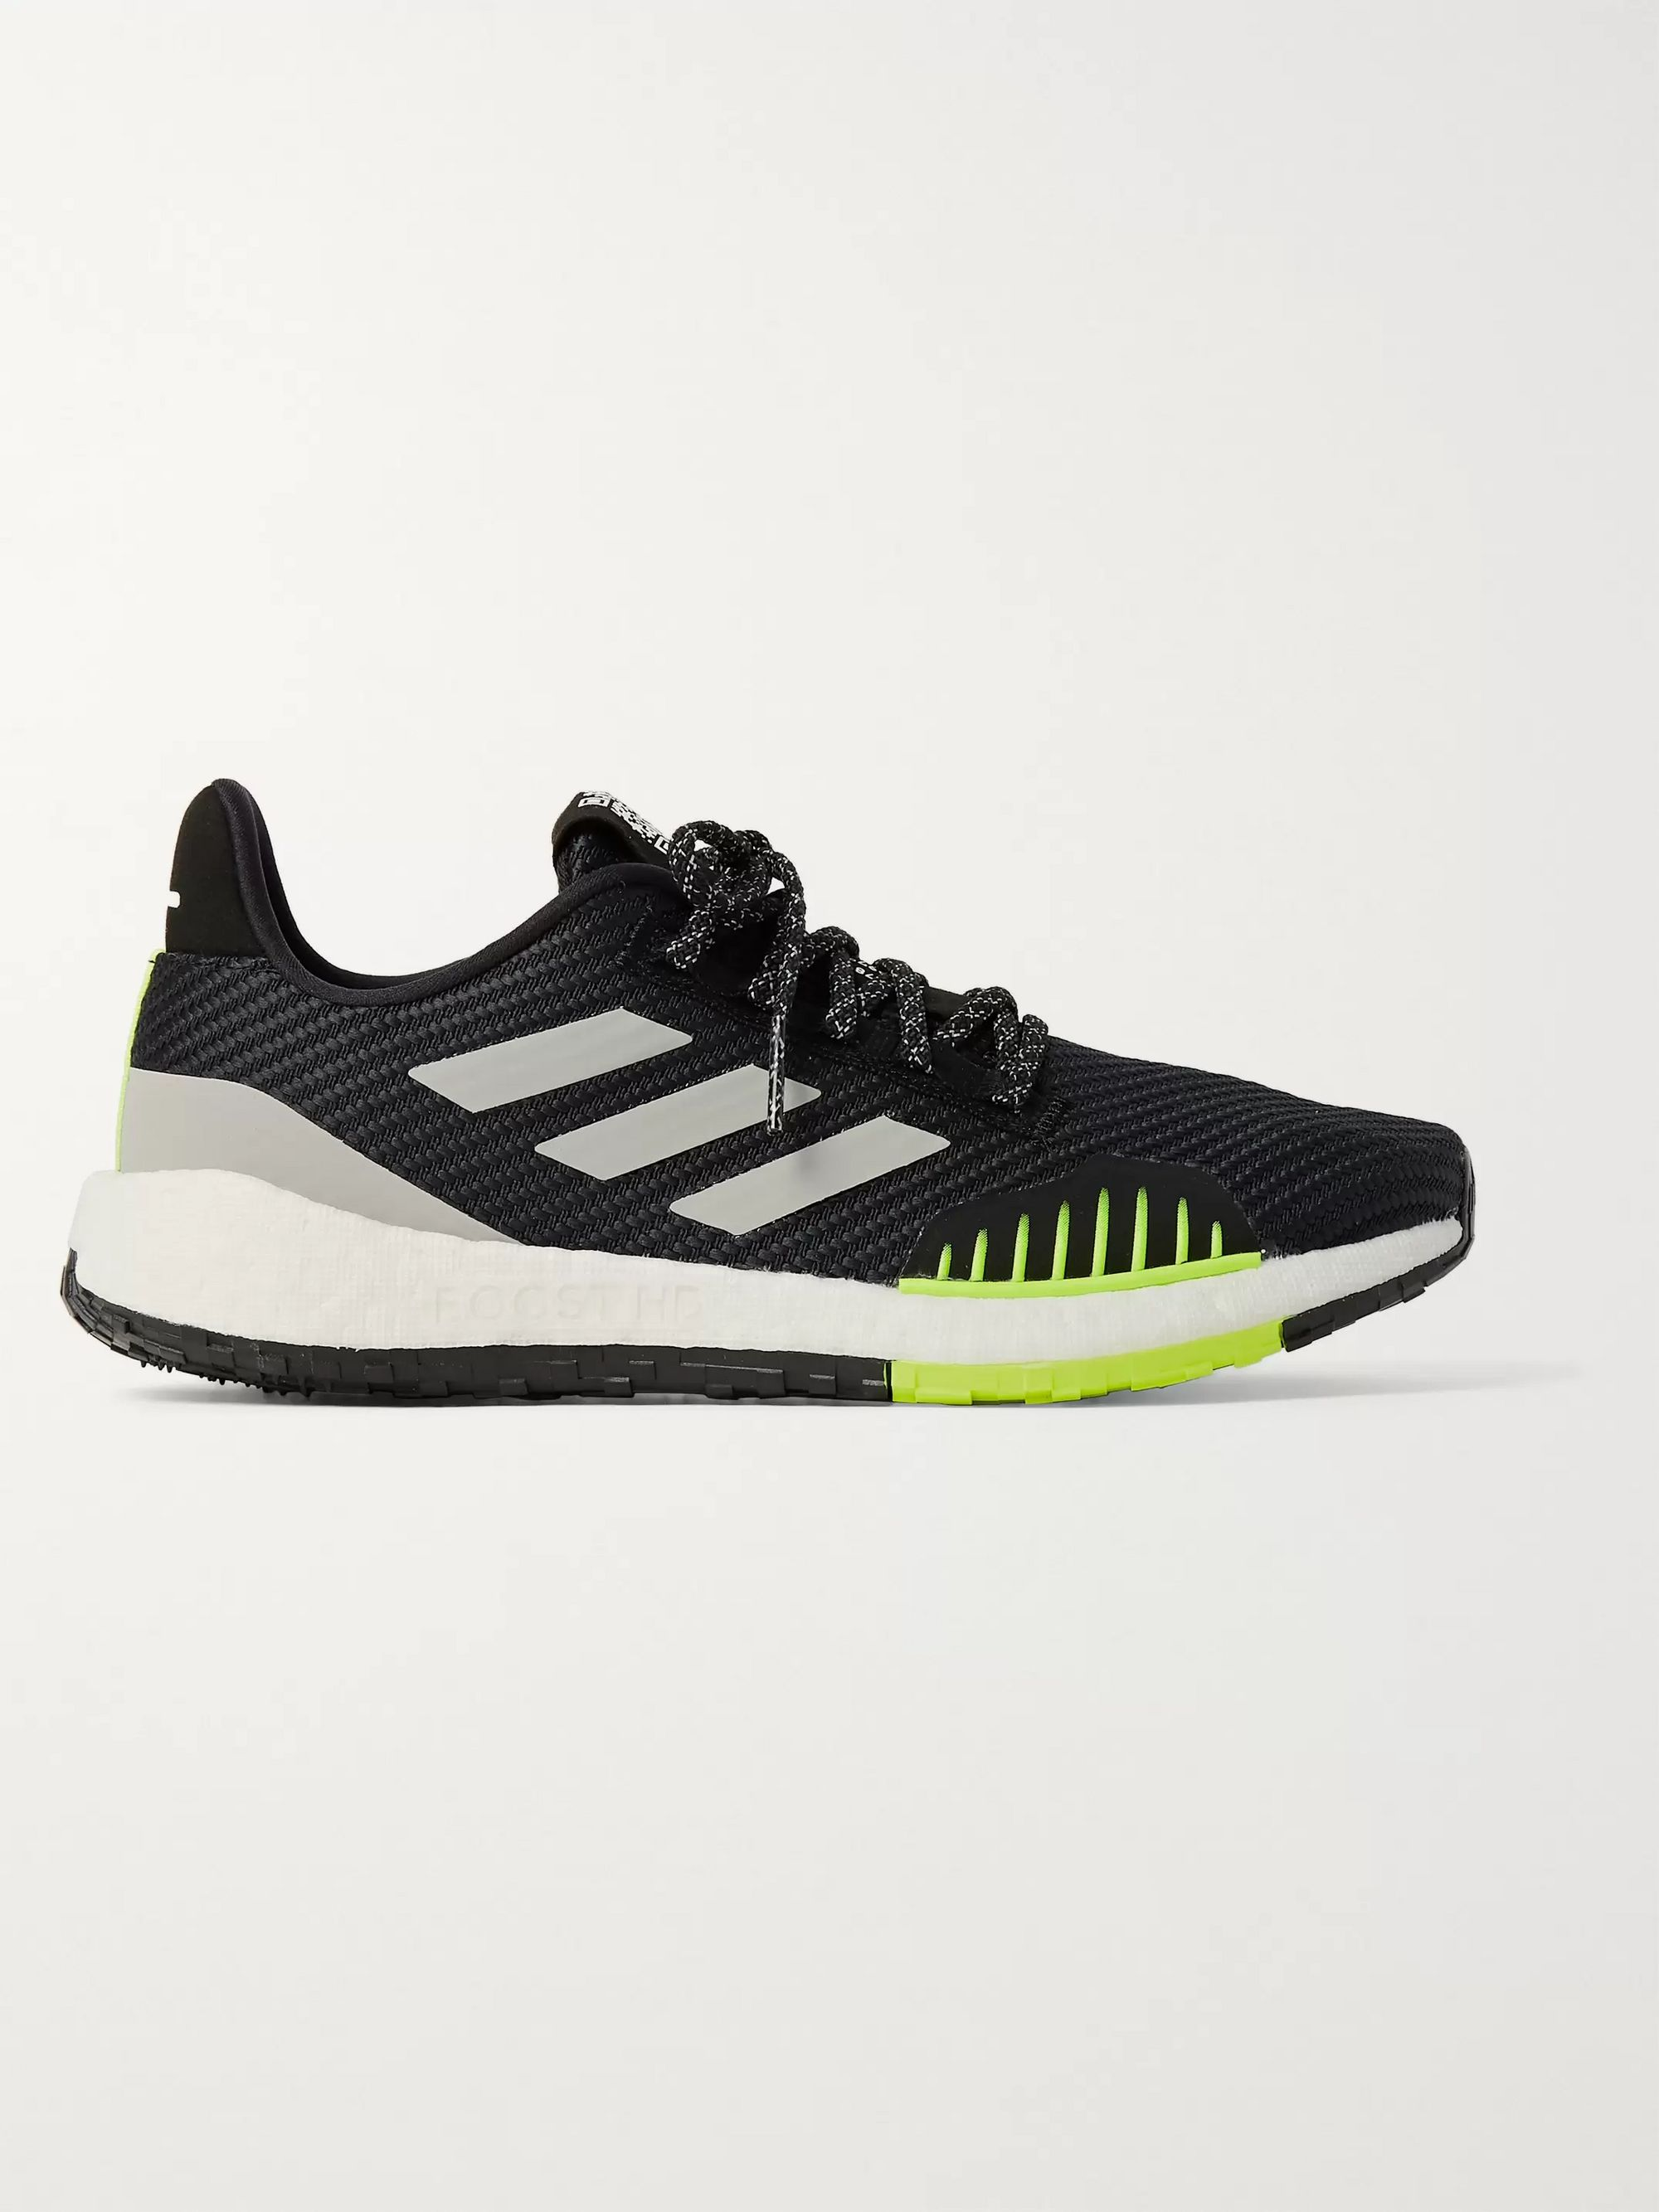 Adidas Sport Pulseboost HD Winter Stretch-Knit Running Sneakers